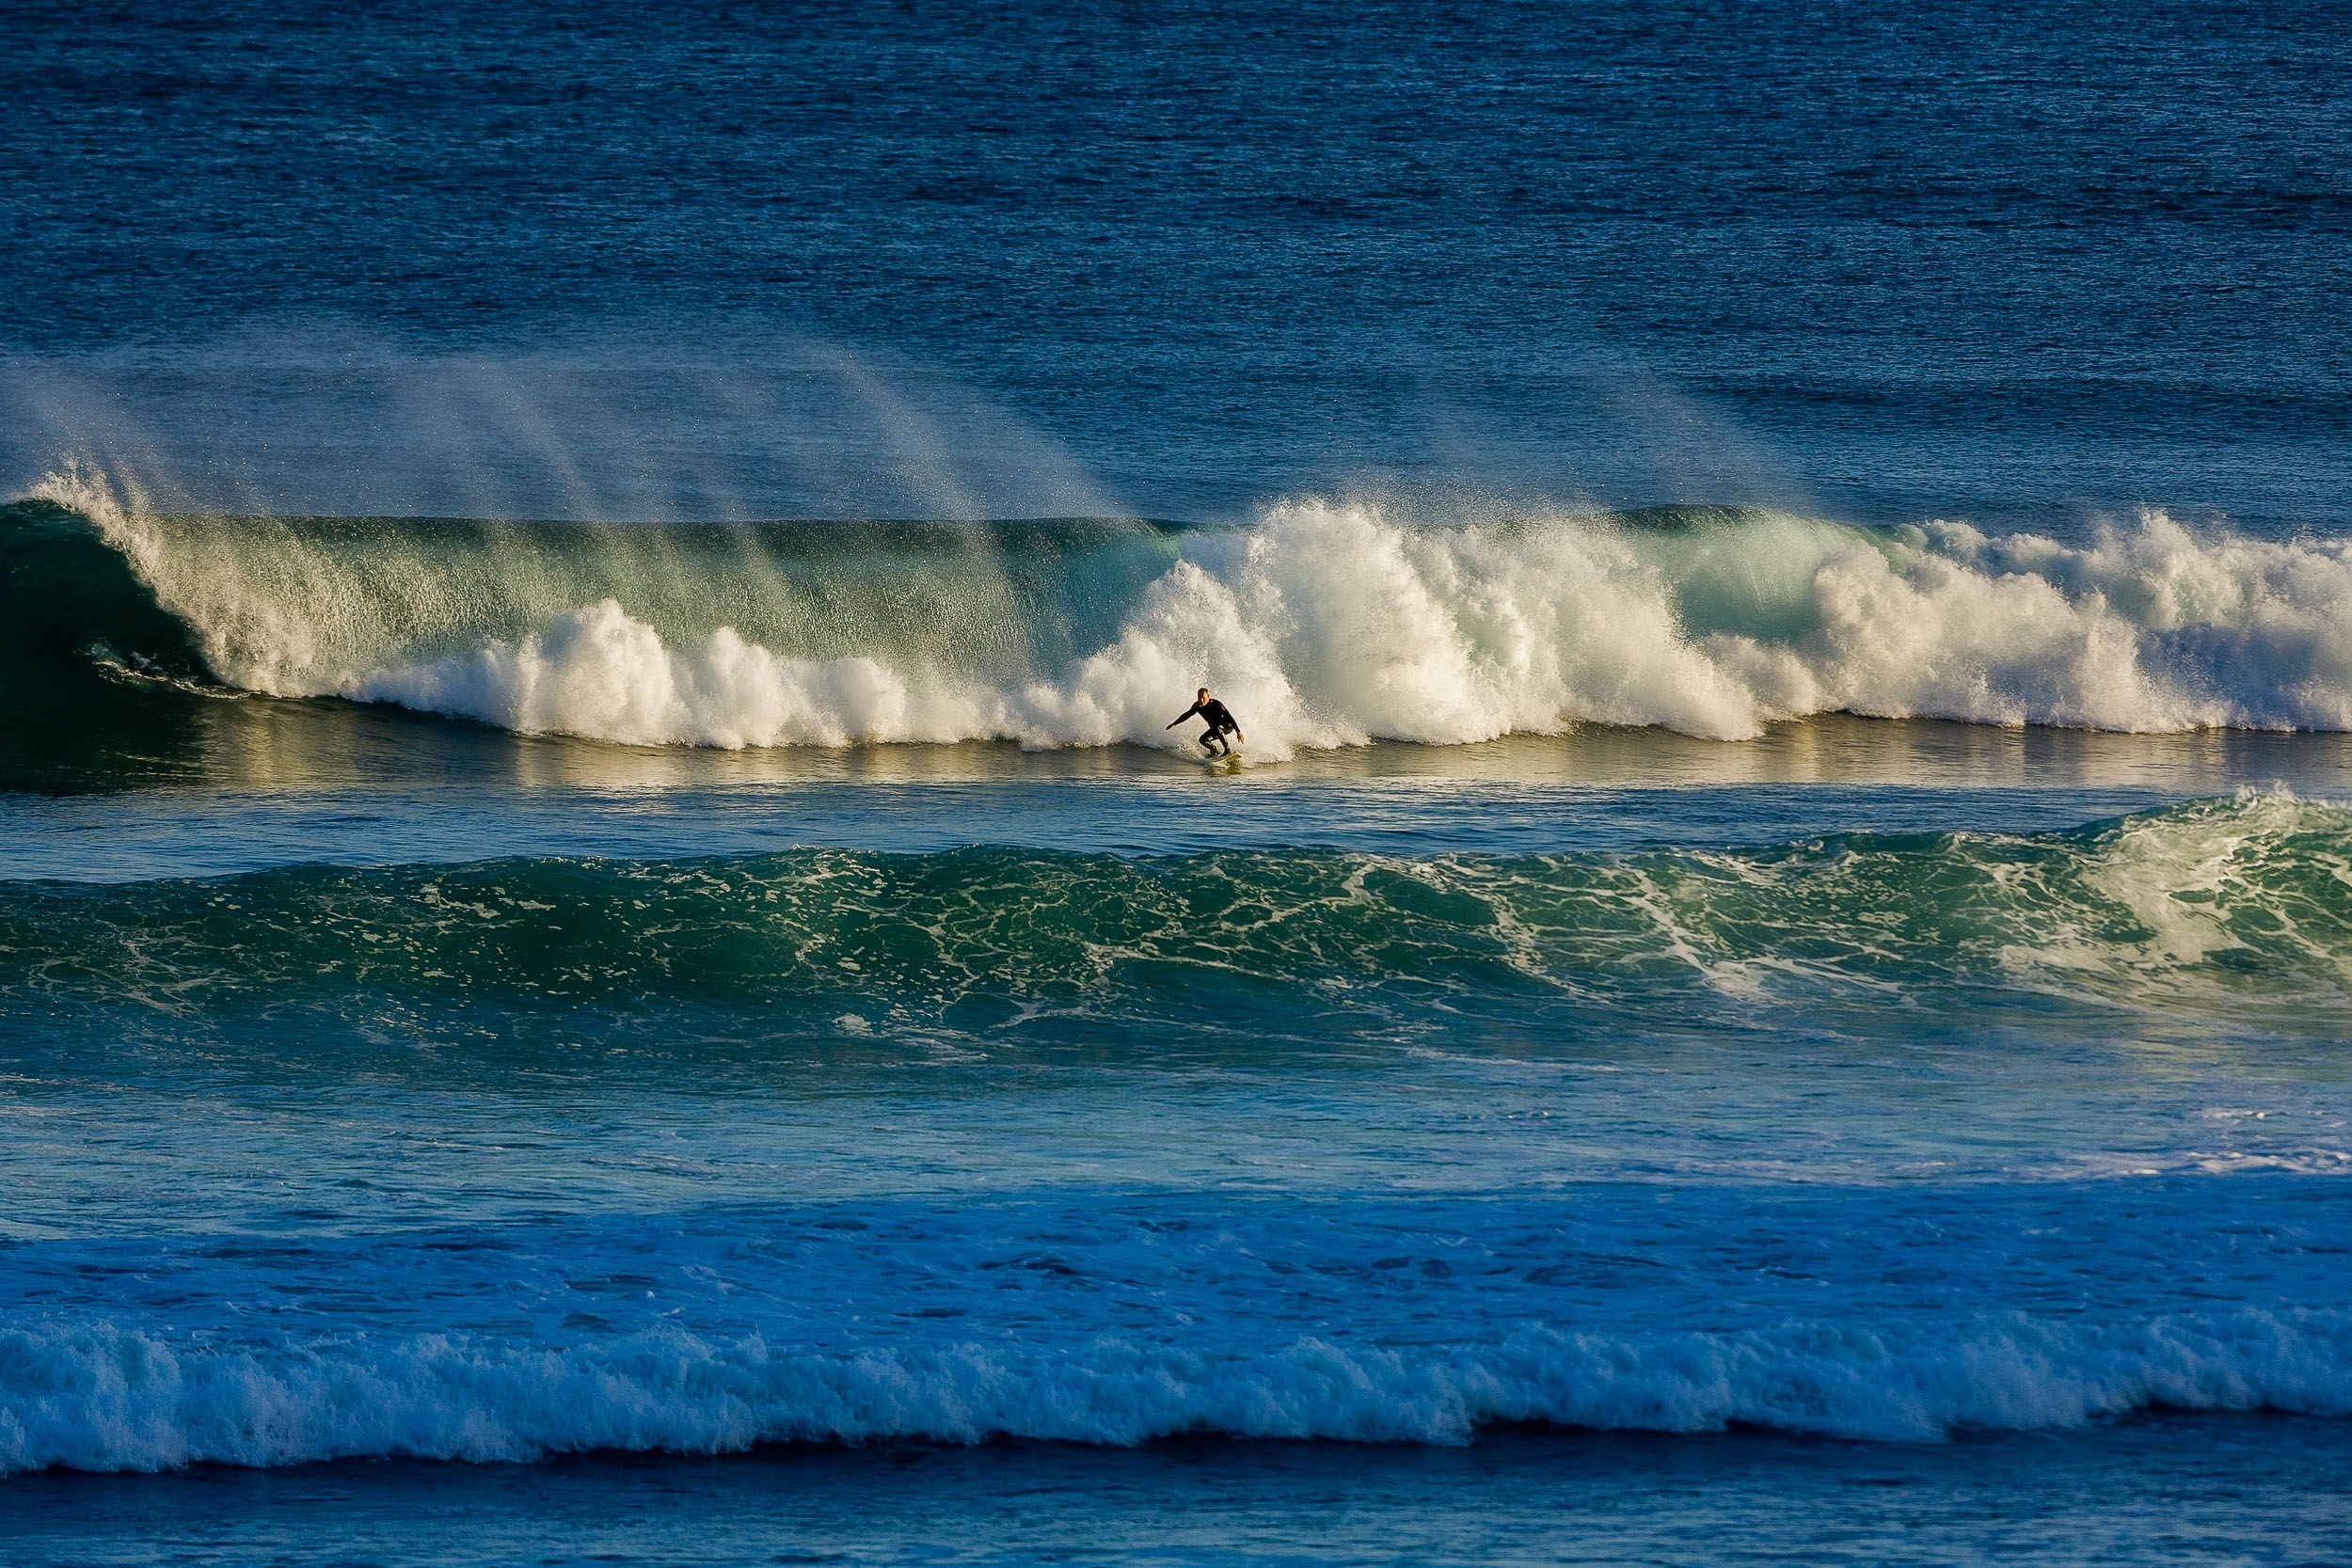 A  surfer , catching the  late afternoon rays  at  Bells Beach, Australia .